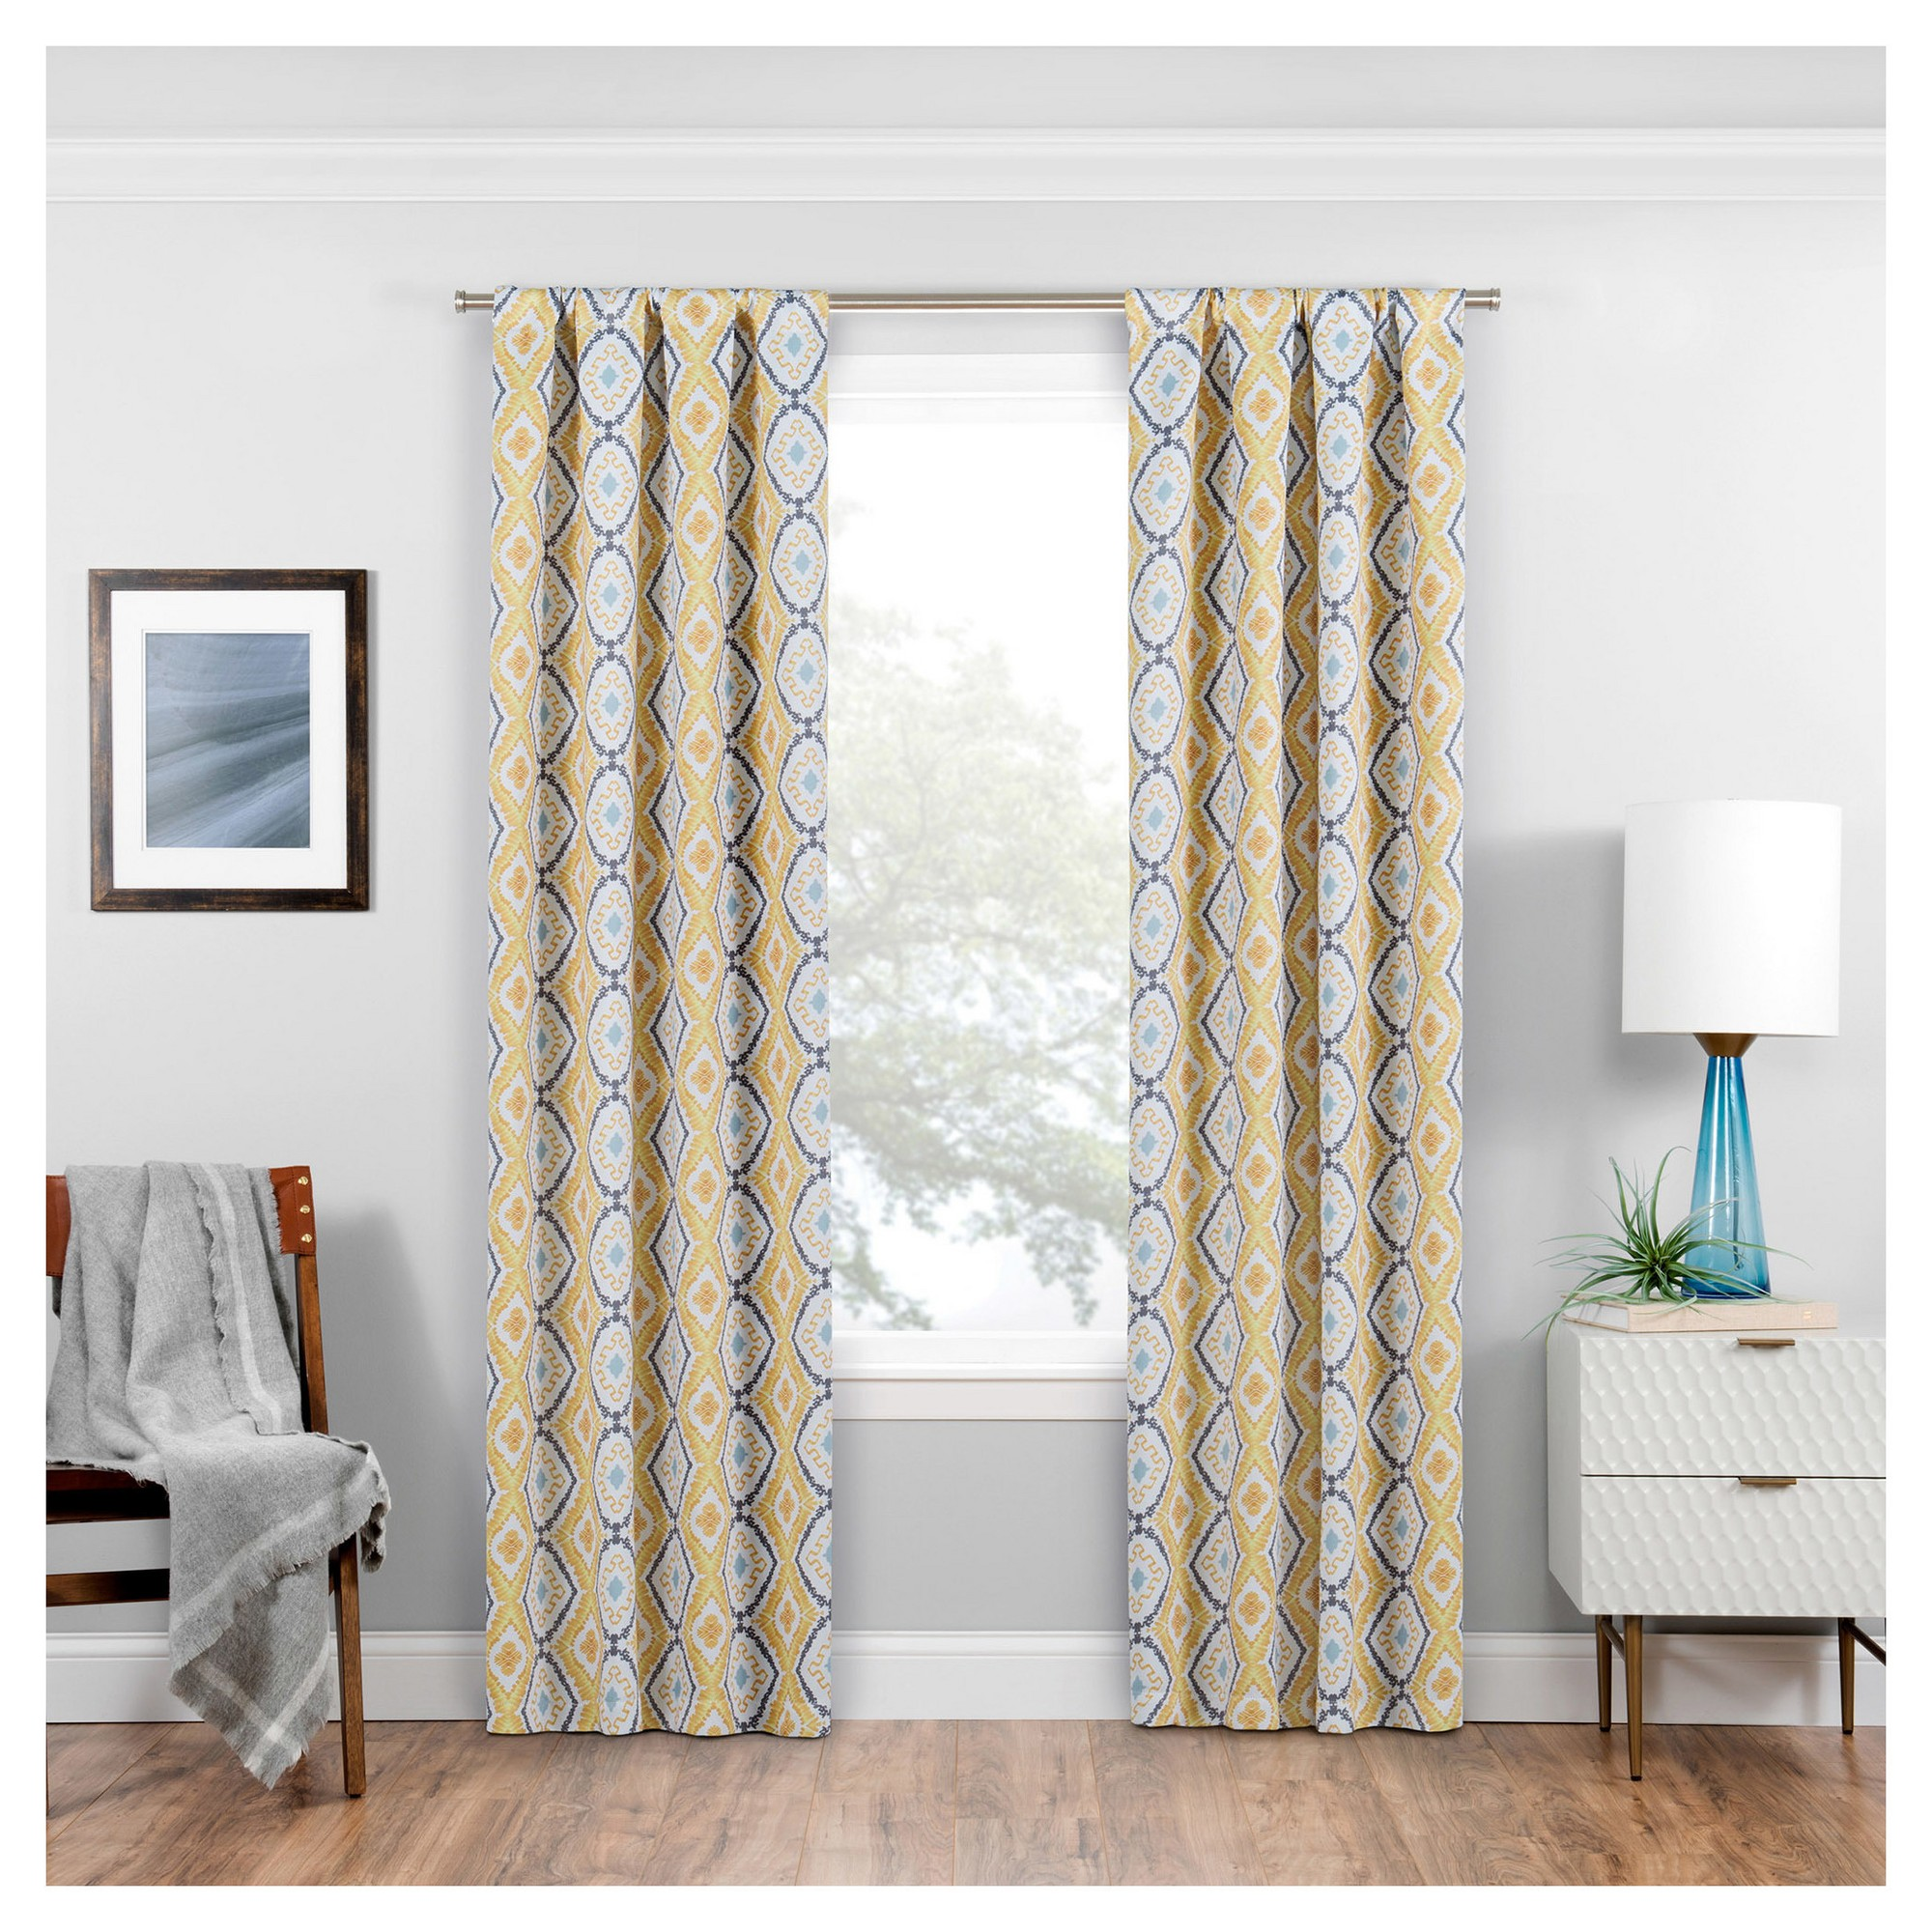 panel pack in blackout grommet yg l blk gld triple weave drapes black curtain gold curtains p